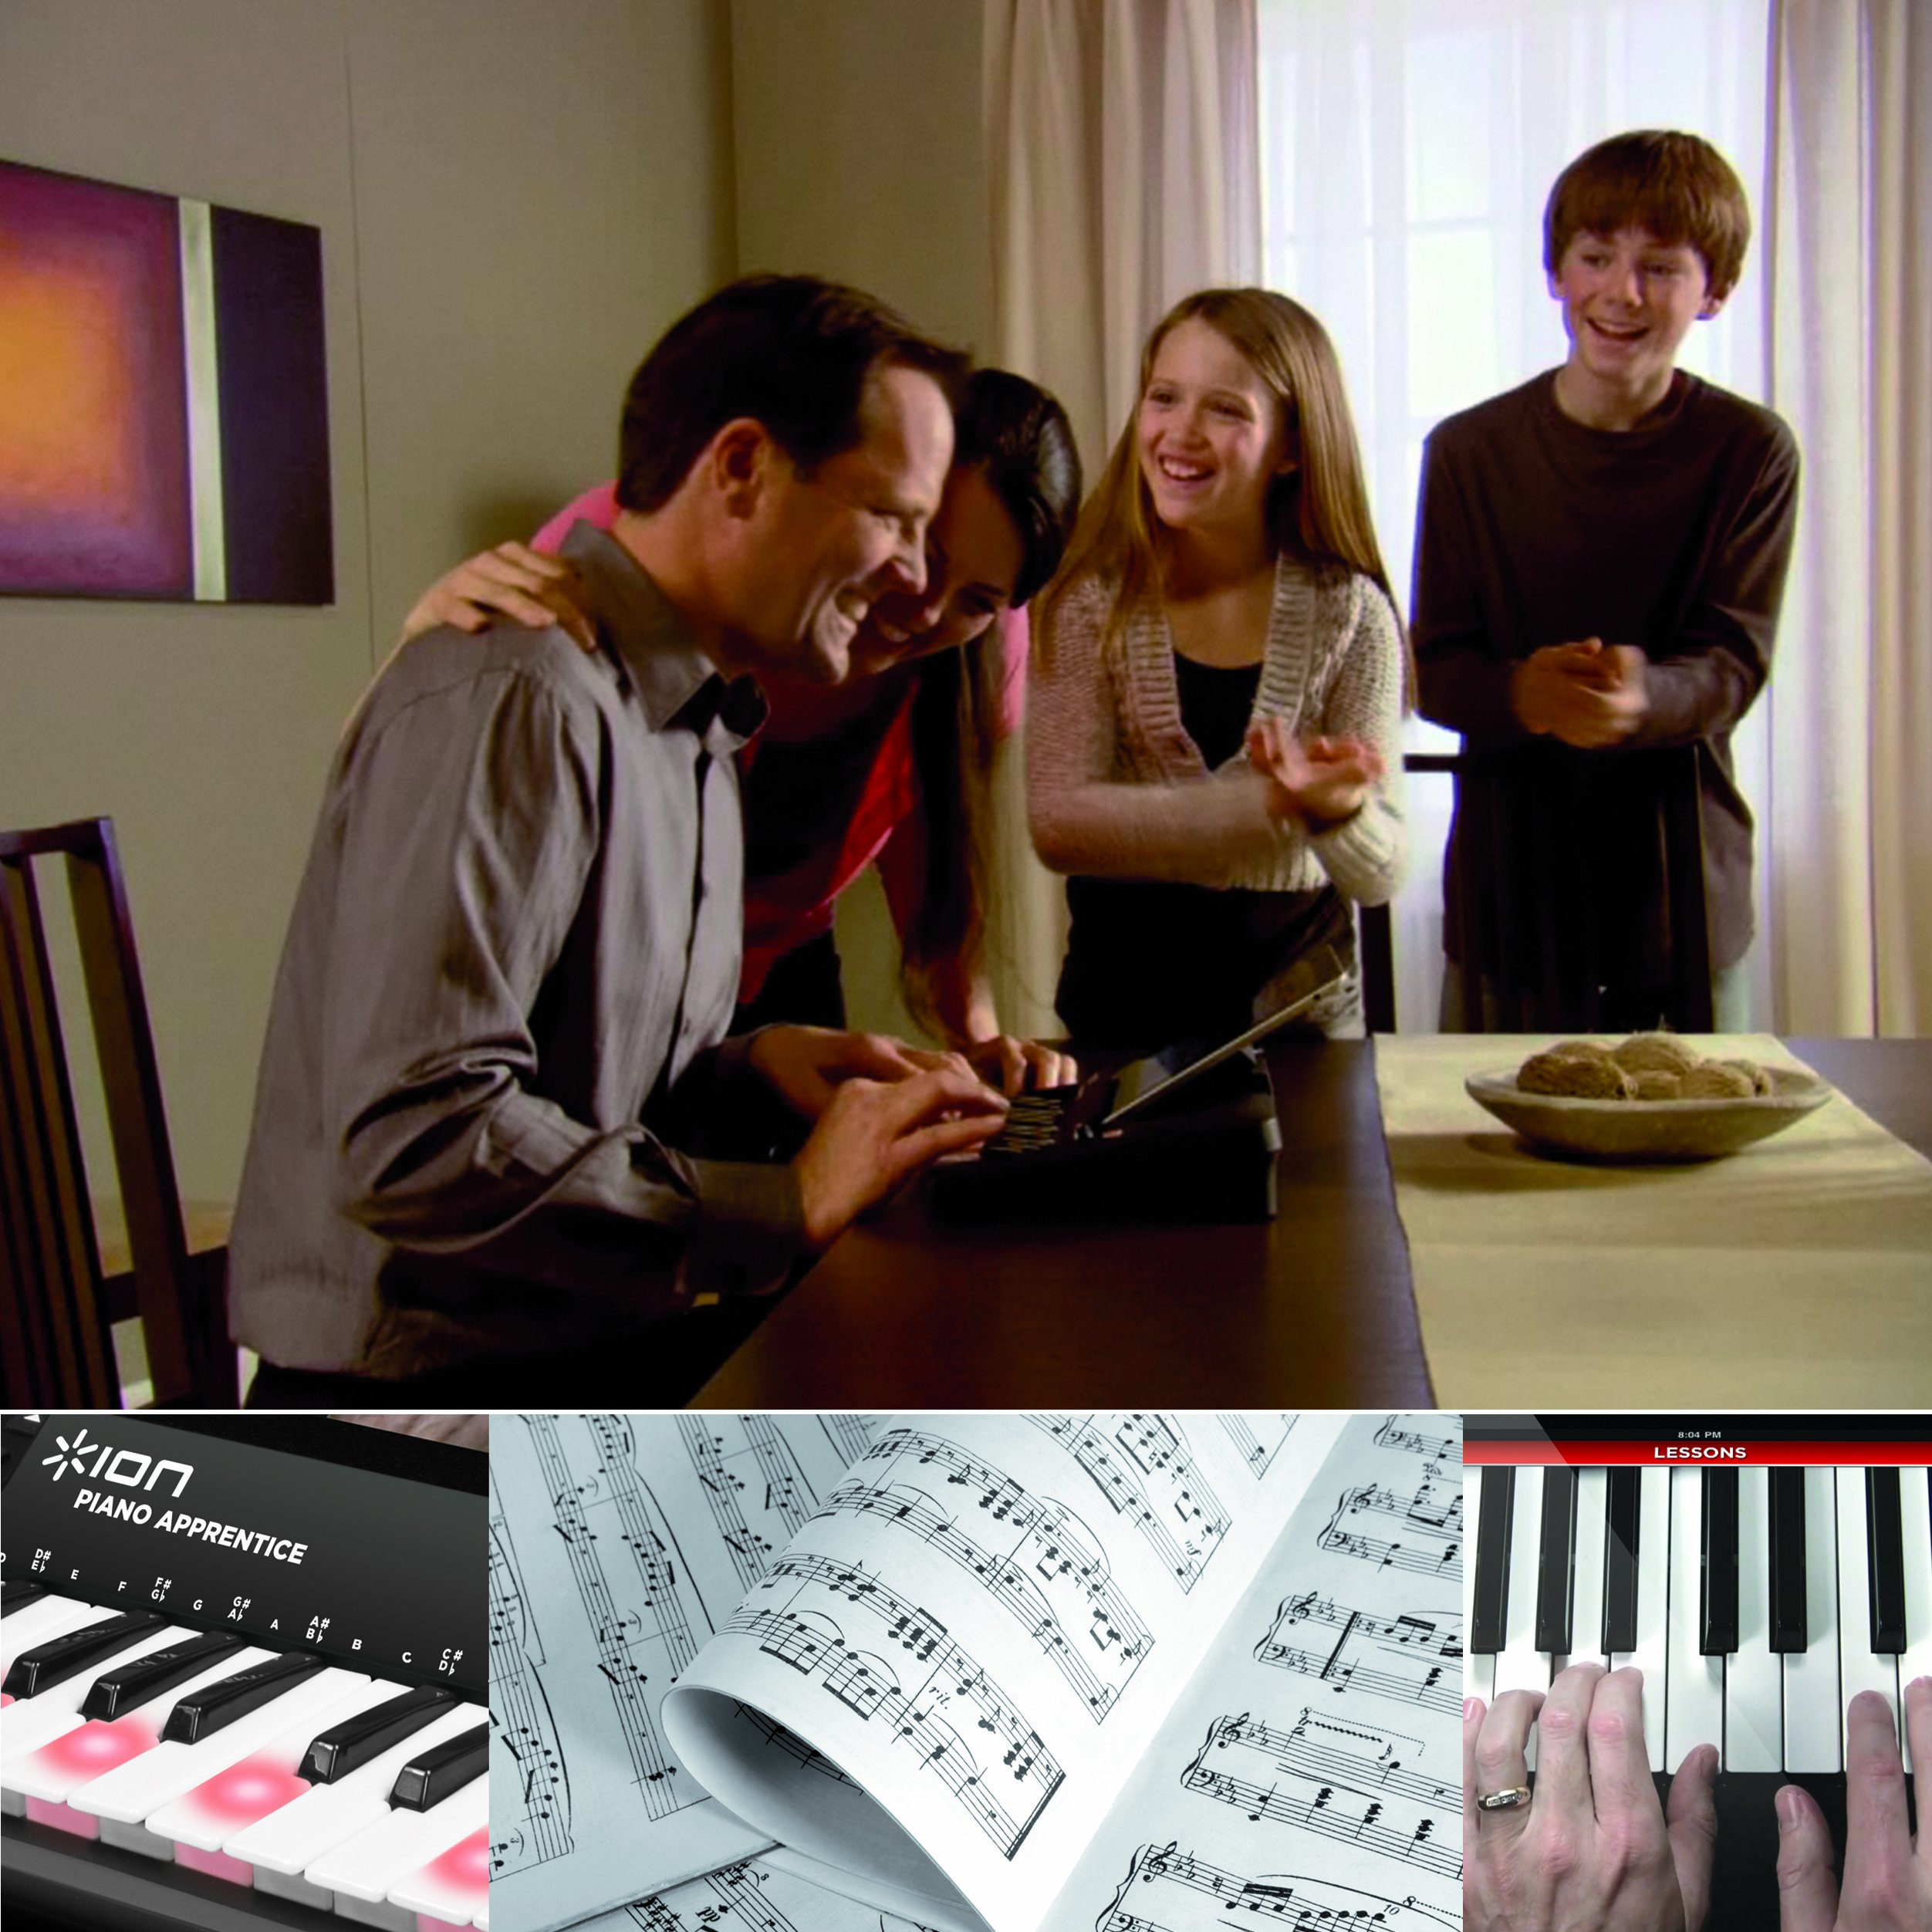 ION Audio PIANO APPRENTICE 25-note Lighted Keyboard for iPad, iPod and iPhone by ION Audio